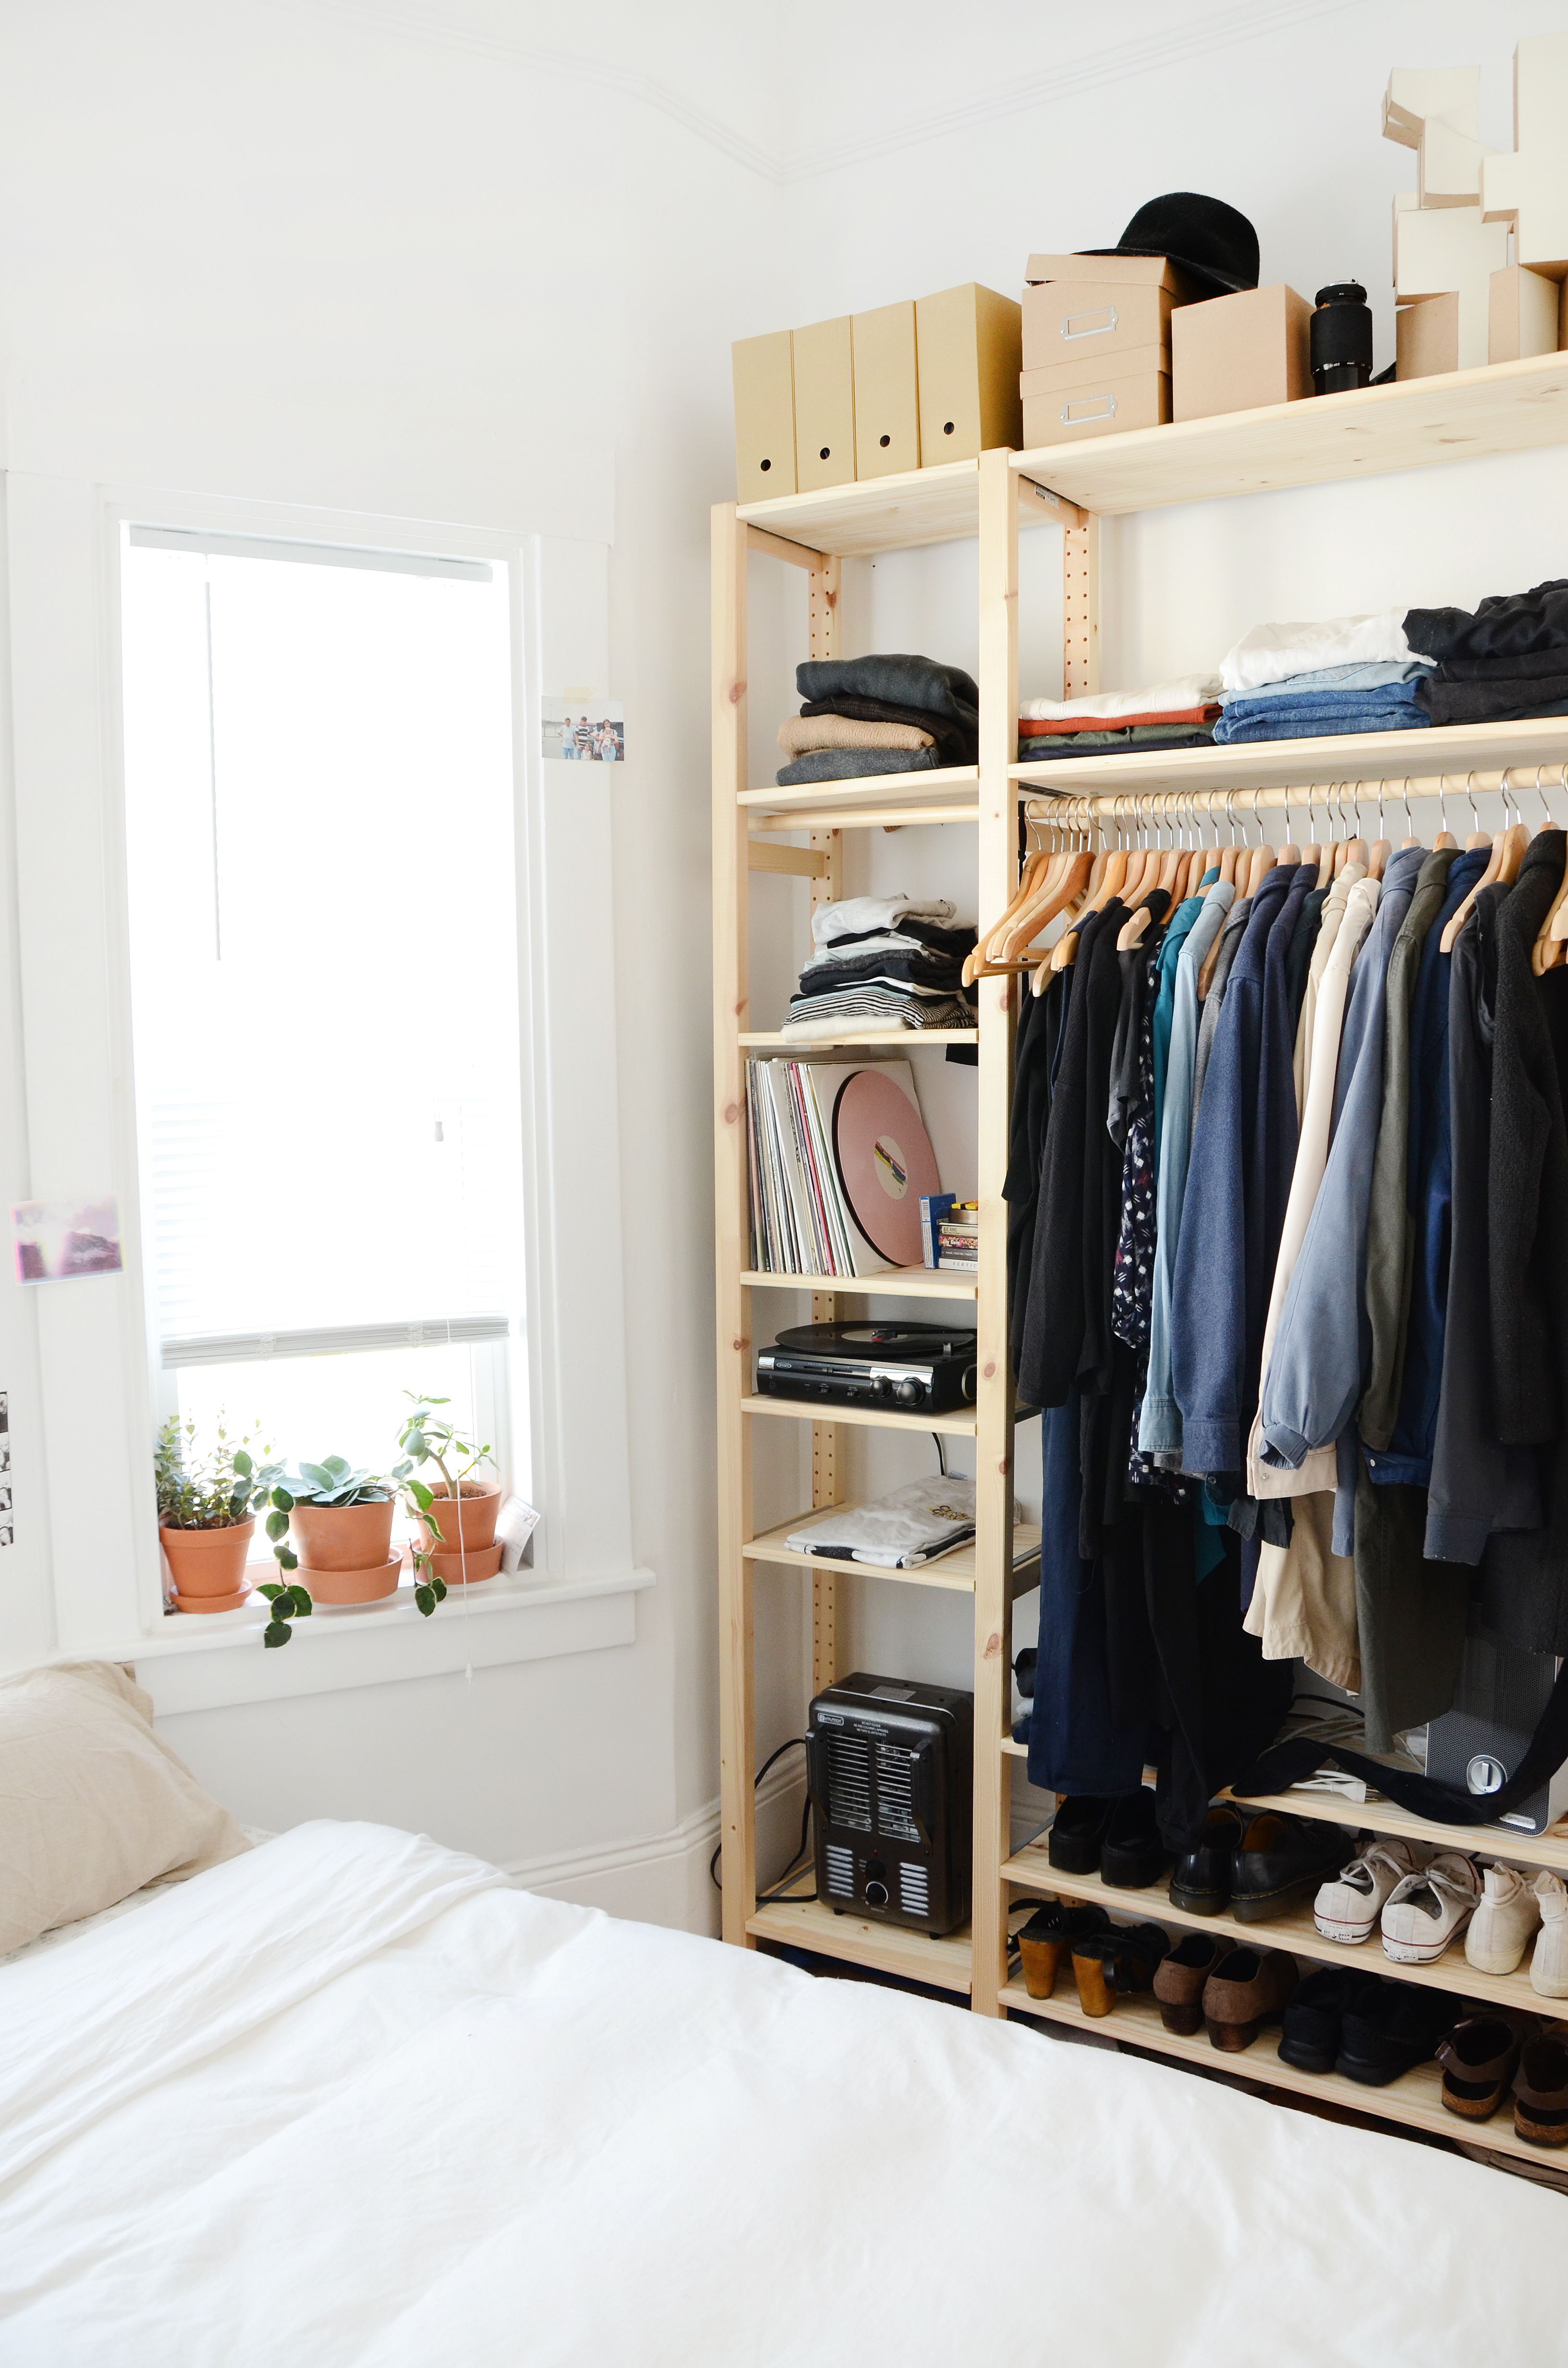 Ikea Schlafzimmer Wenig Platz How To Create A Bedroom Closet Out Of Thin Air Lungi Wohnung